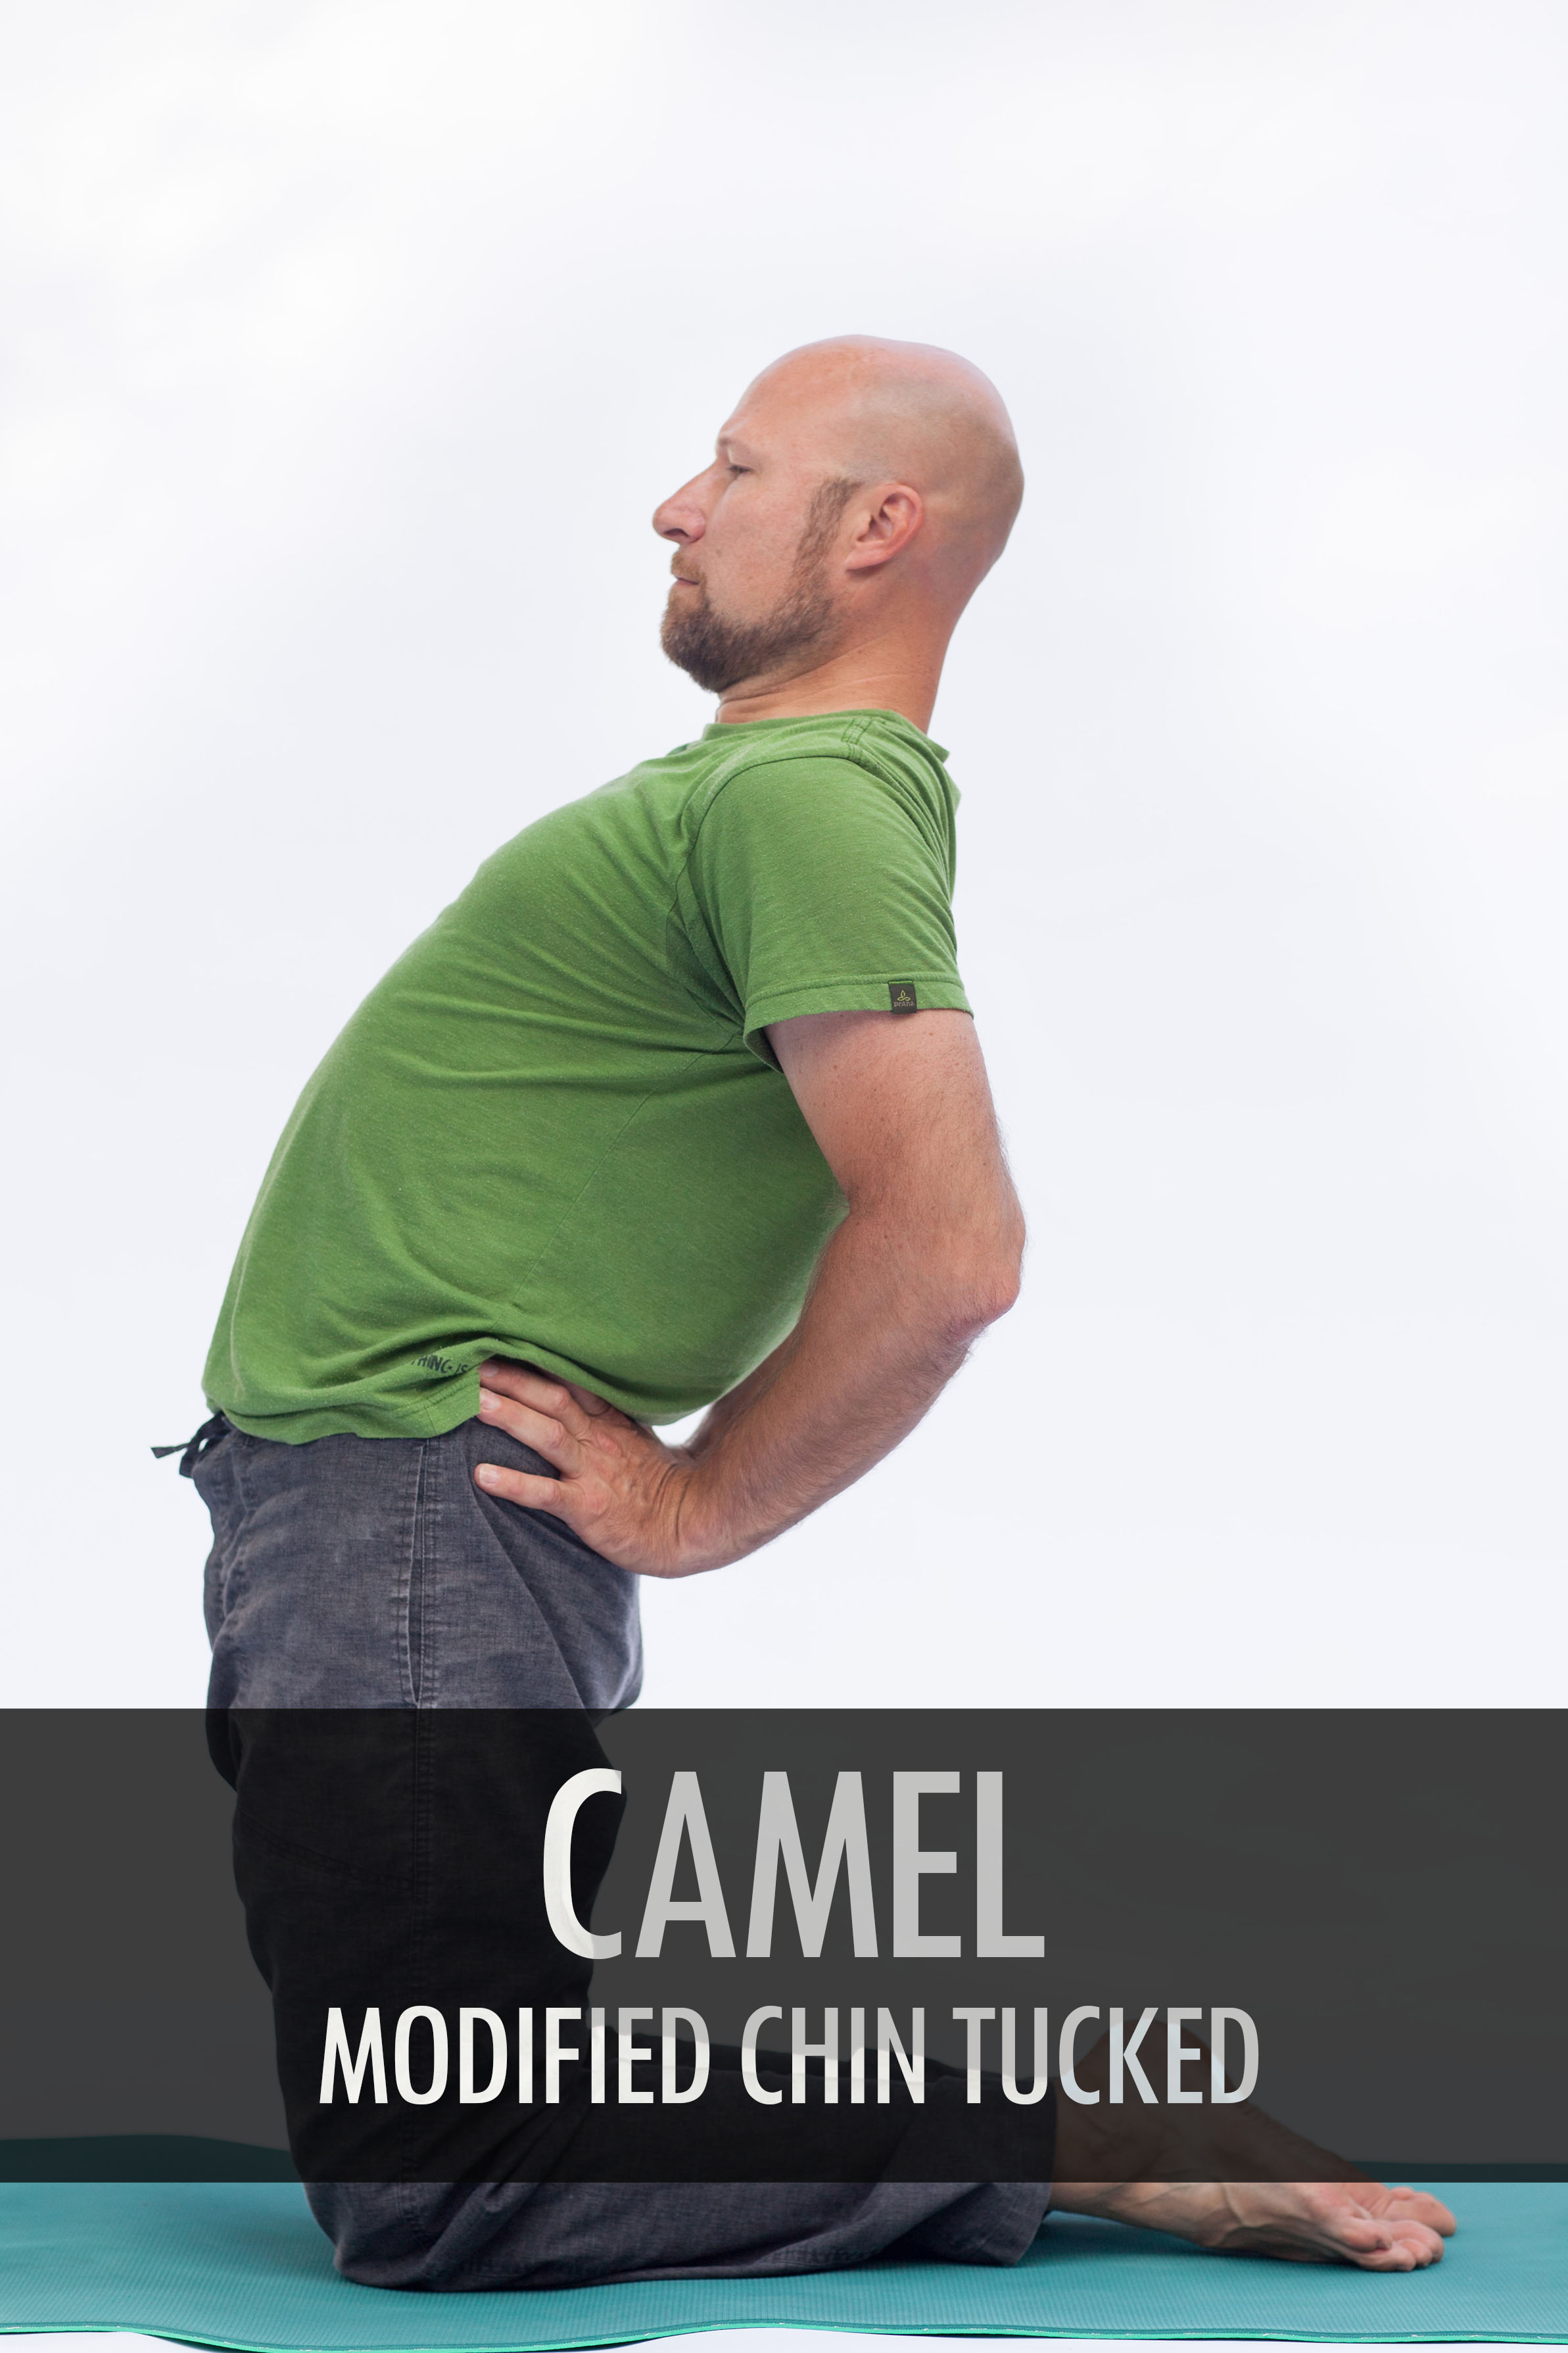 Modified Camel With Chin Tucked.jpg